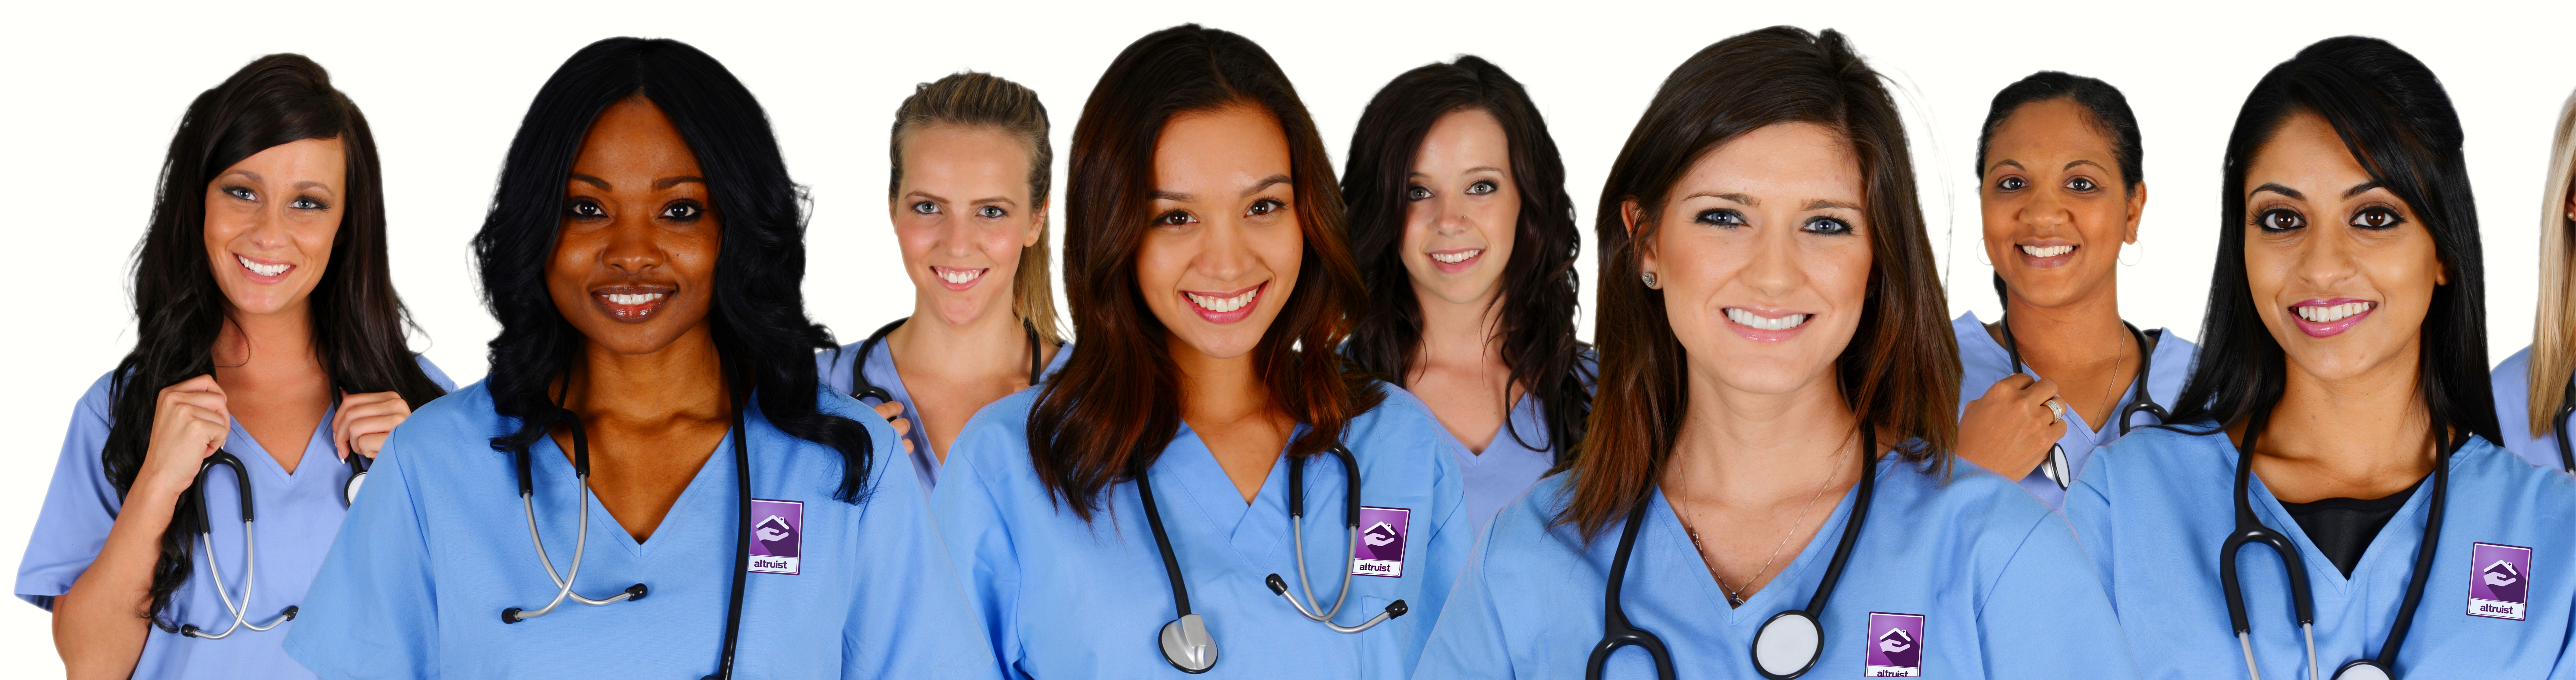 EXPERIENCED TEAM OF PROFESSIONALS